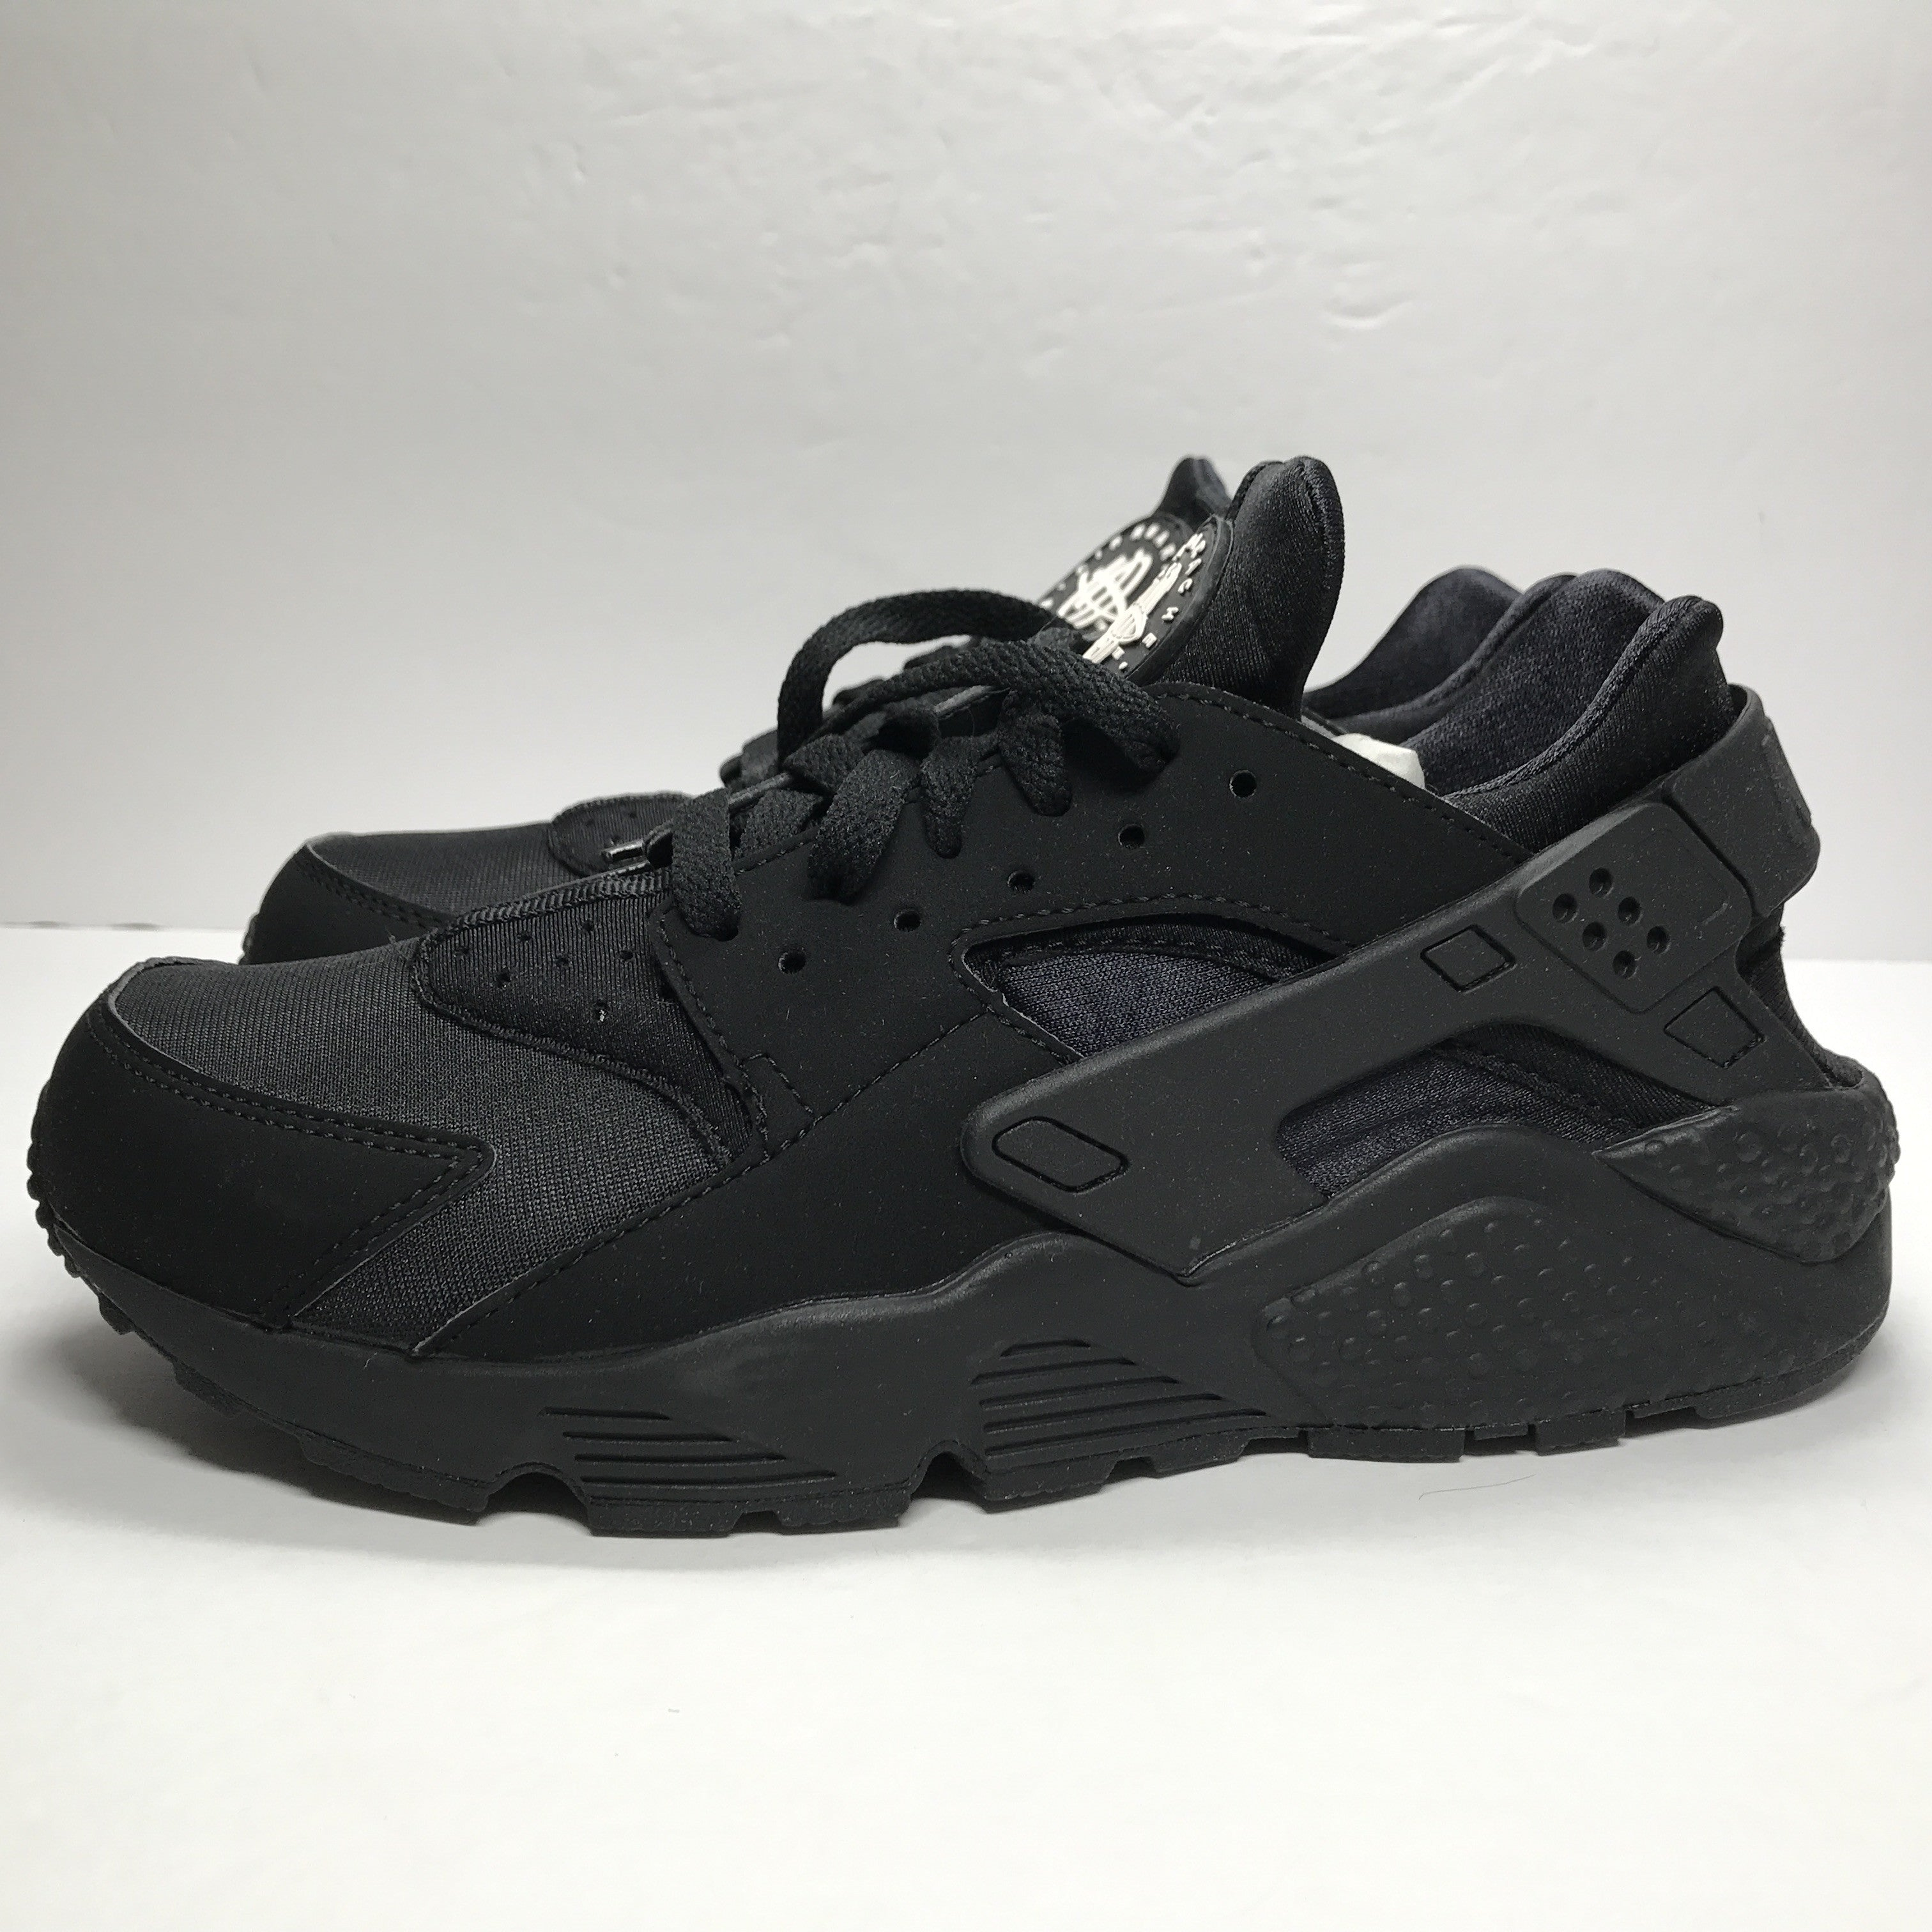 DS Nike Air Huarache Triple Black Size 7.5